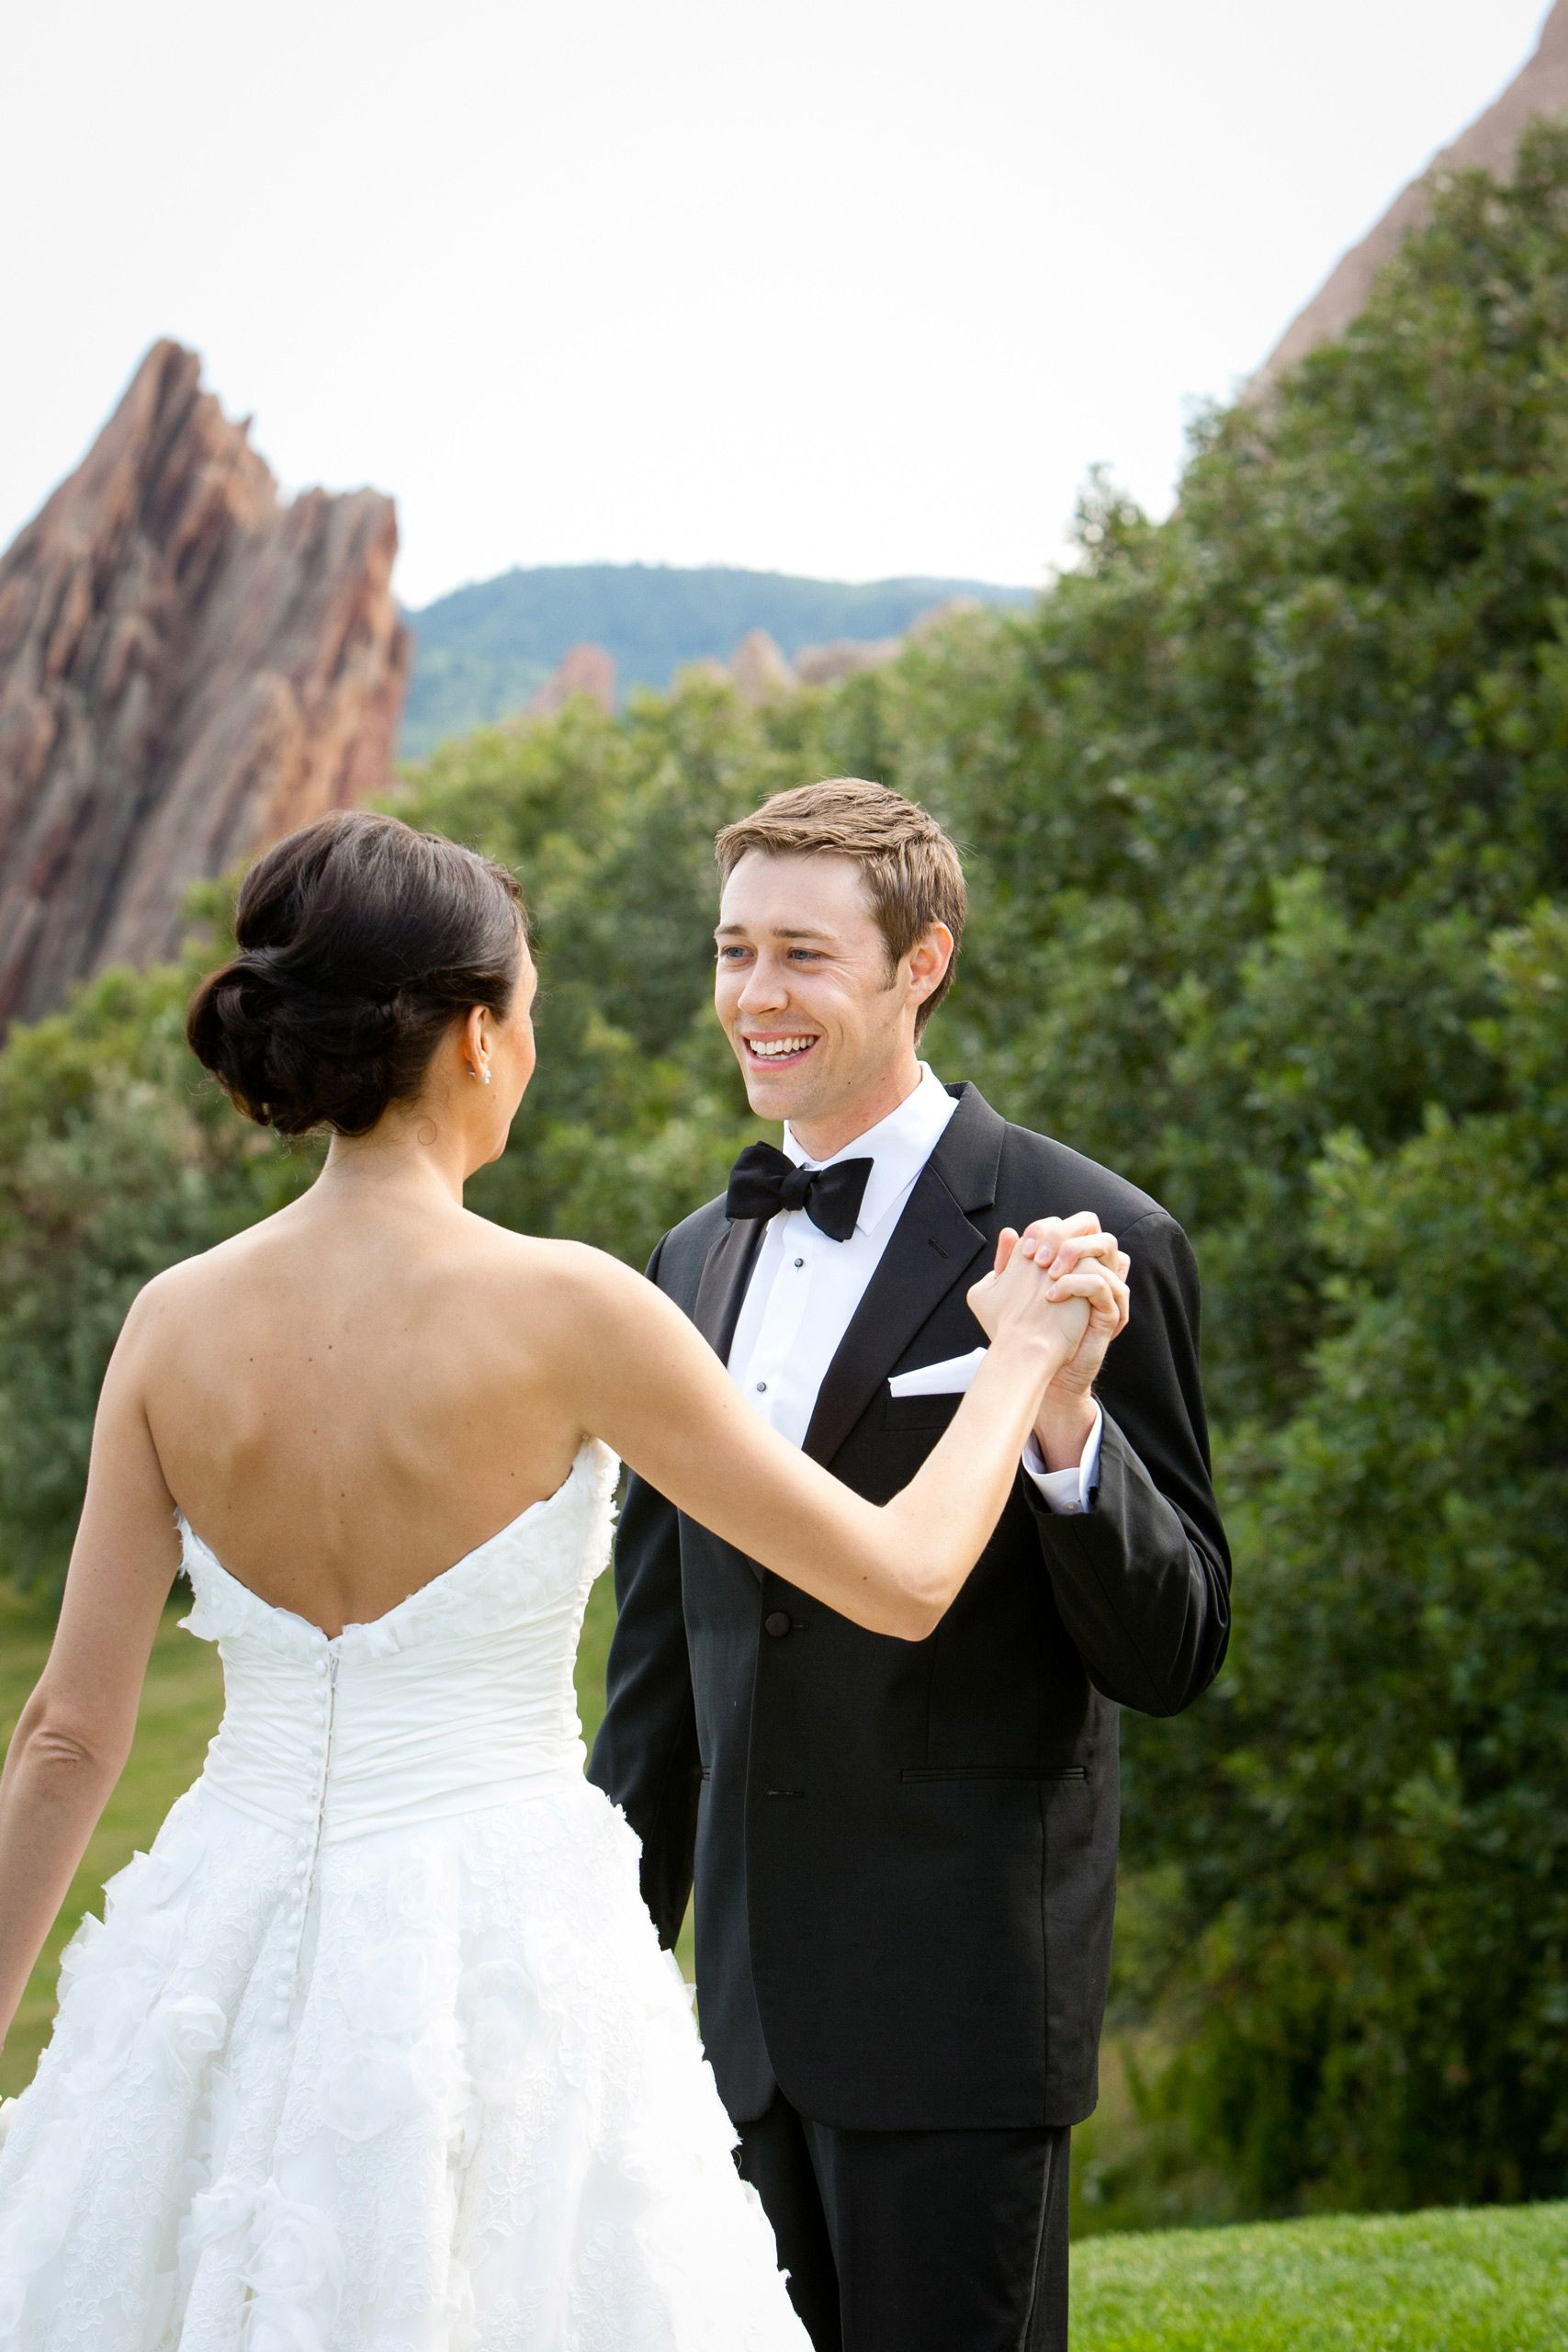 006_Arrowhead_Golf_Course_wedding.jpg